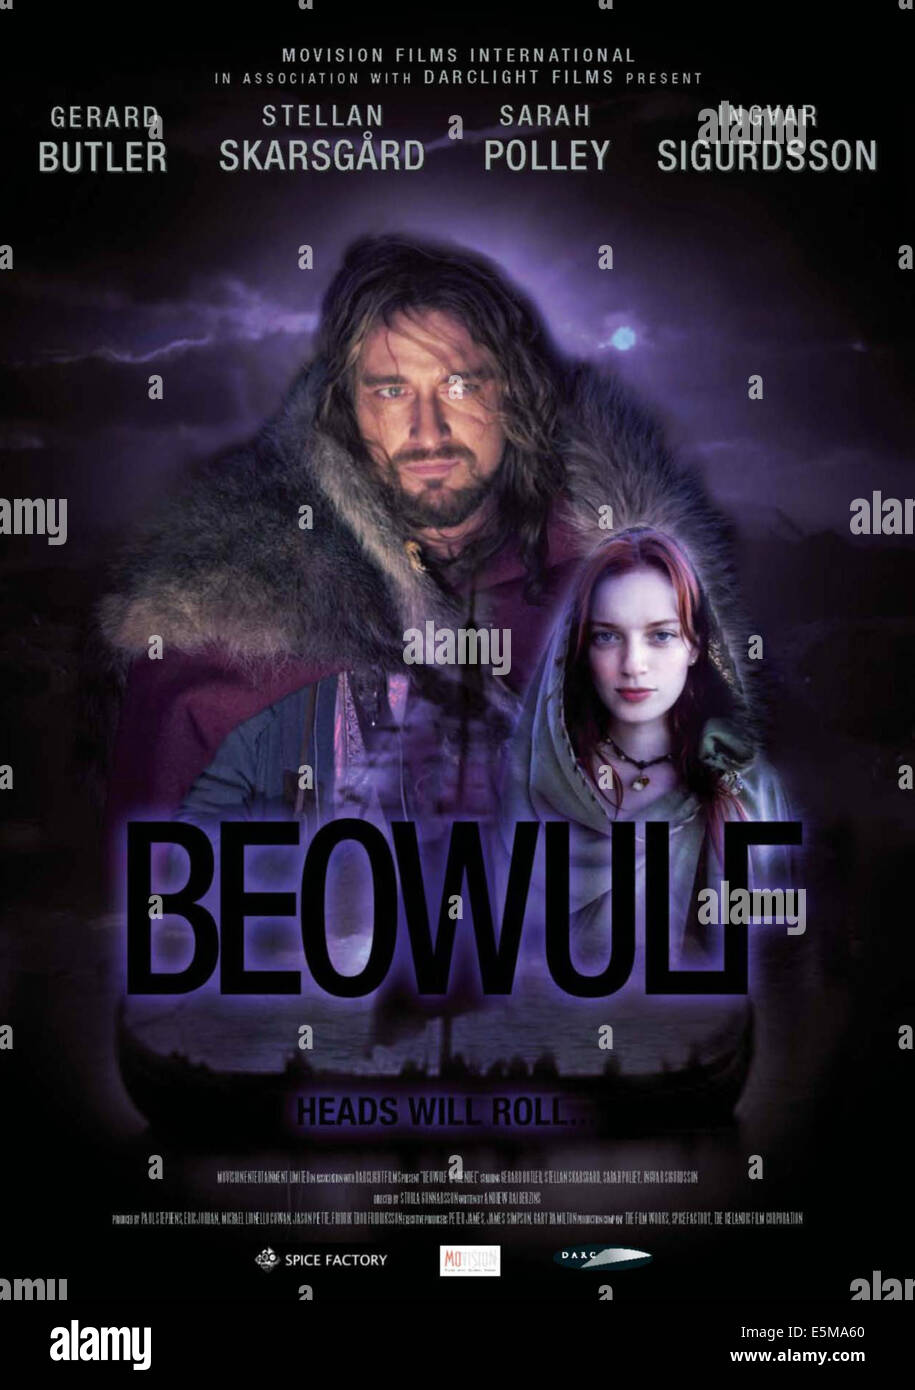 BEOWULF & GRENDEL, (aka BEOWULF), poster art, from left: Gerard Butler, Sarah Polley, 2005. ©Union Station - Stock Image